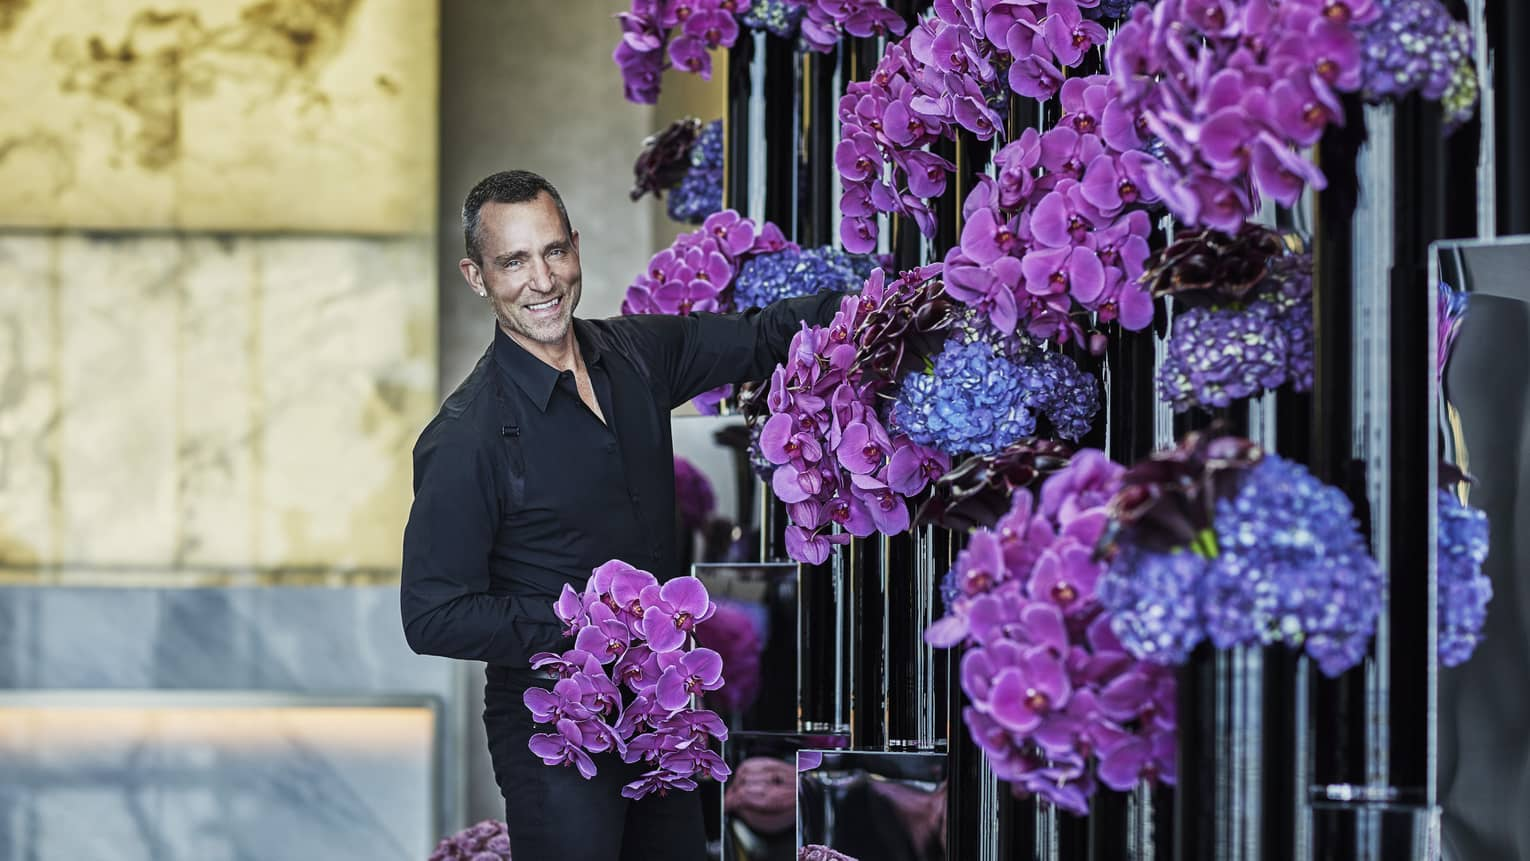 Florist arranges purple and blue flowers in tall black vases